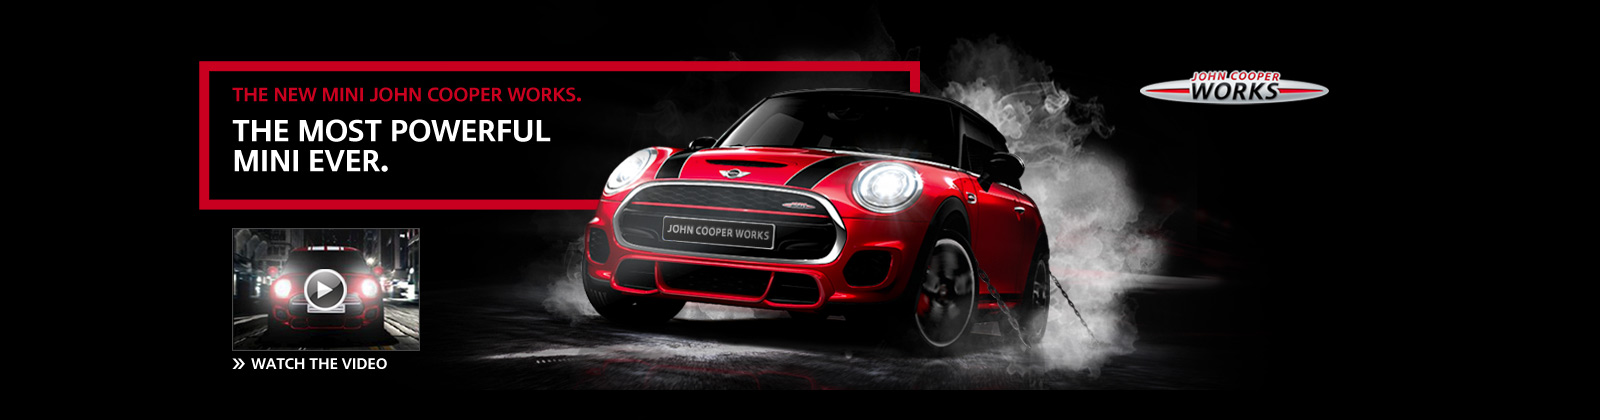 The New MINI John Cooper Works